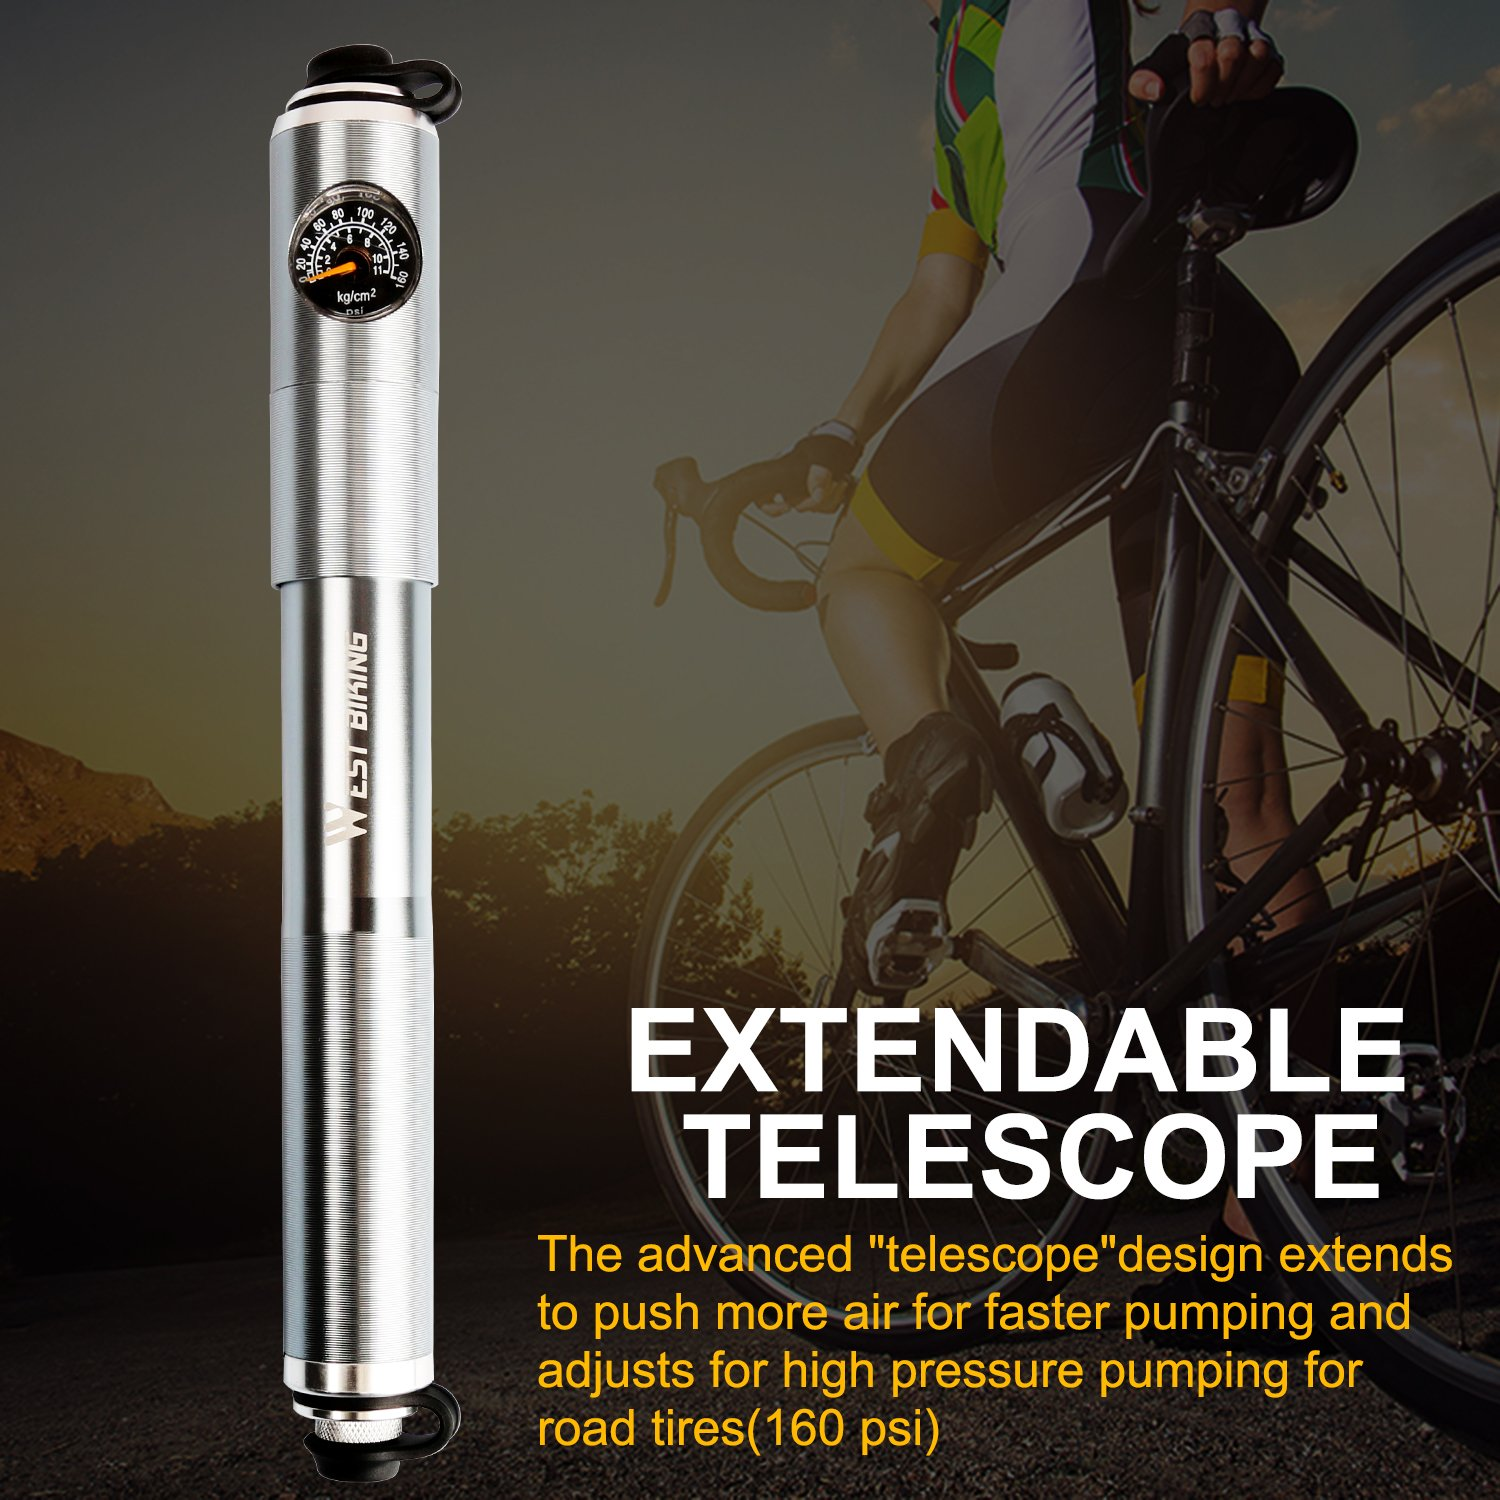 ICOCOPRO Mini Bike Pump with Digital Gauge-Reliable Hand Air Pump-Compatible Schrader Presta Bicycle Tire Pump-Lightweight & Powerful by ICOCOPRO (Image #5)